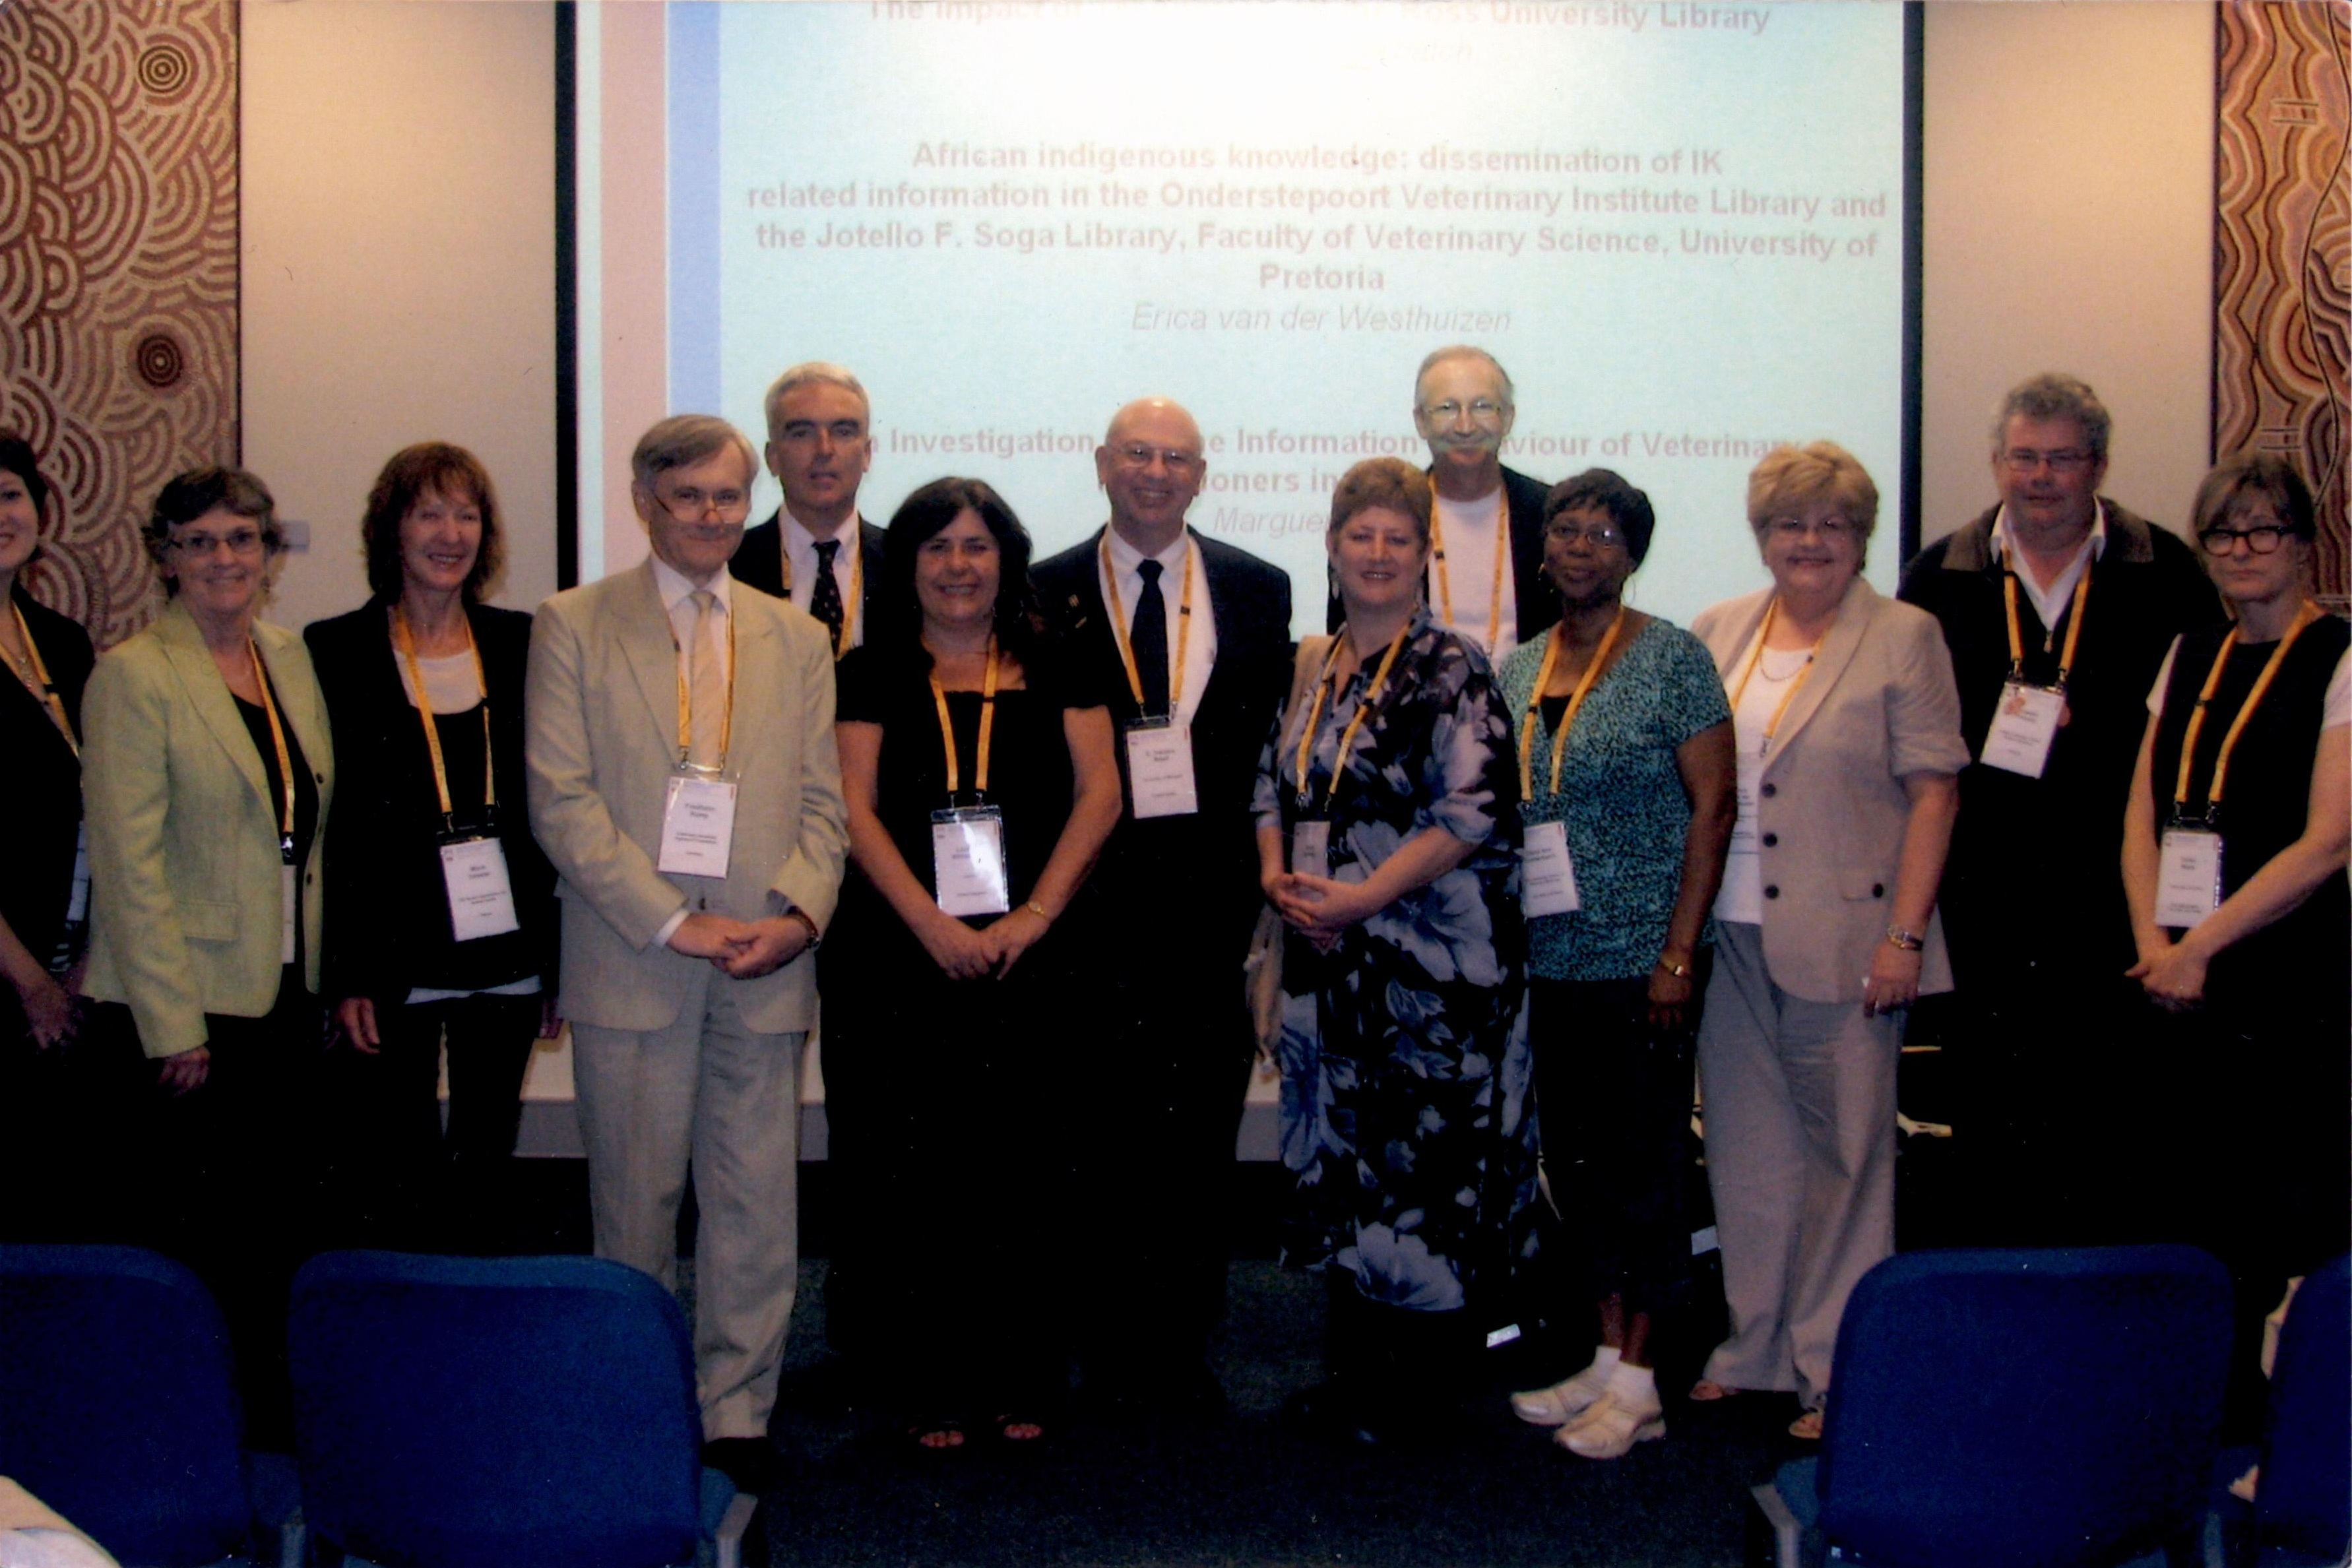 6th ICAHIS Group Photo of Attendees